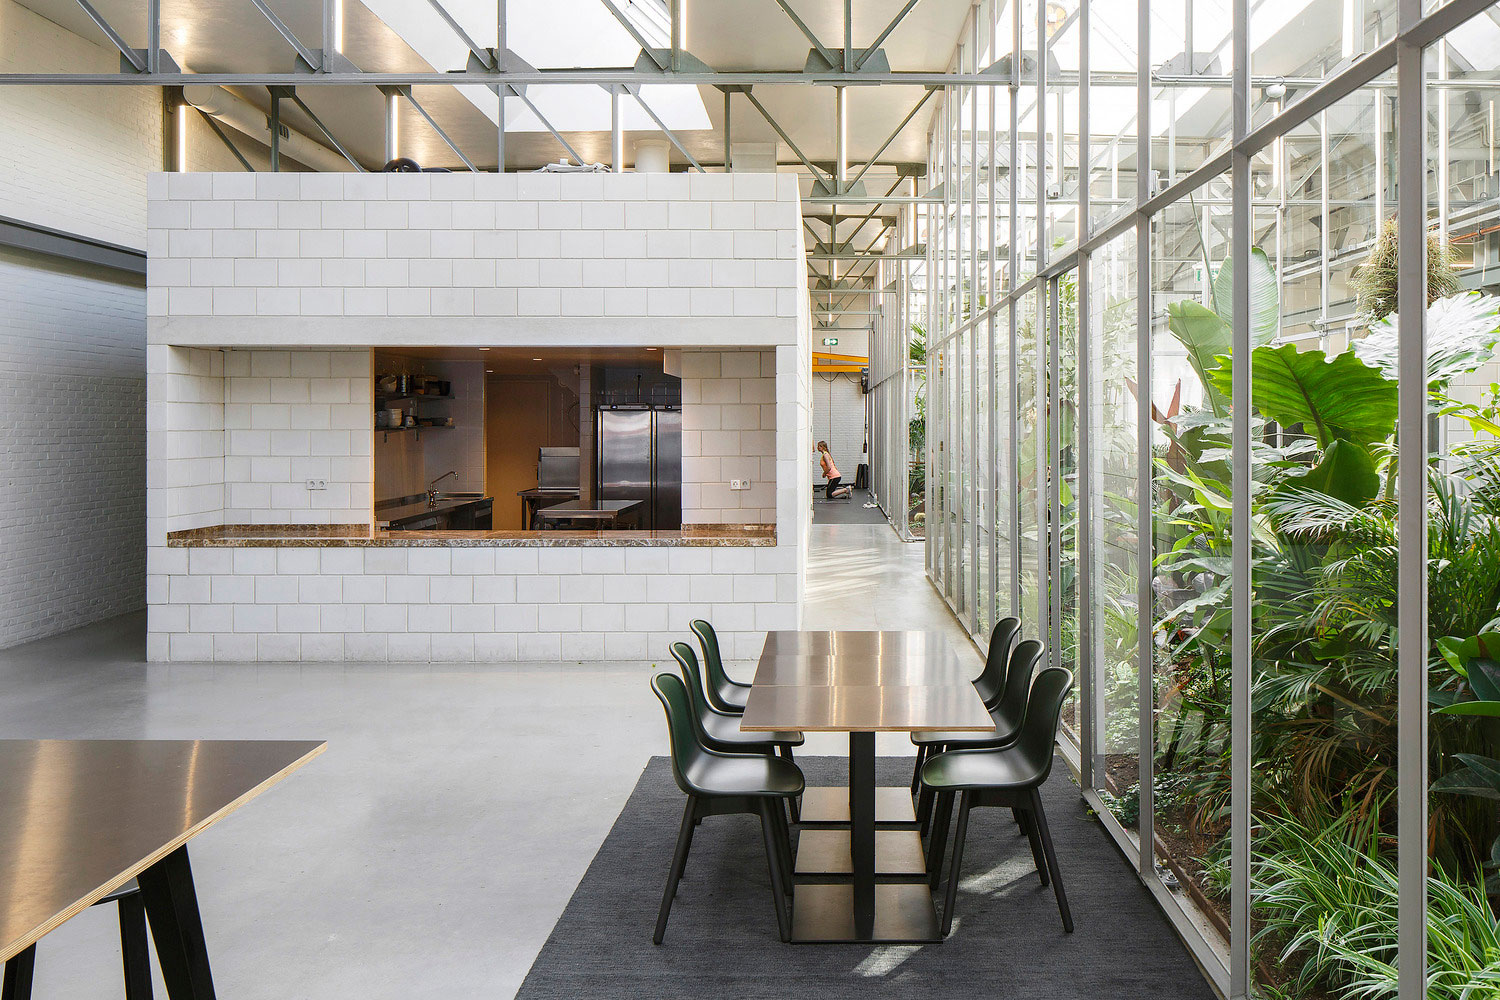 Joolz hq in amsterdam by space encounters yellowtrace for Interieur architect amsterdam